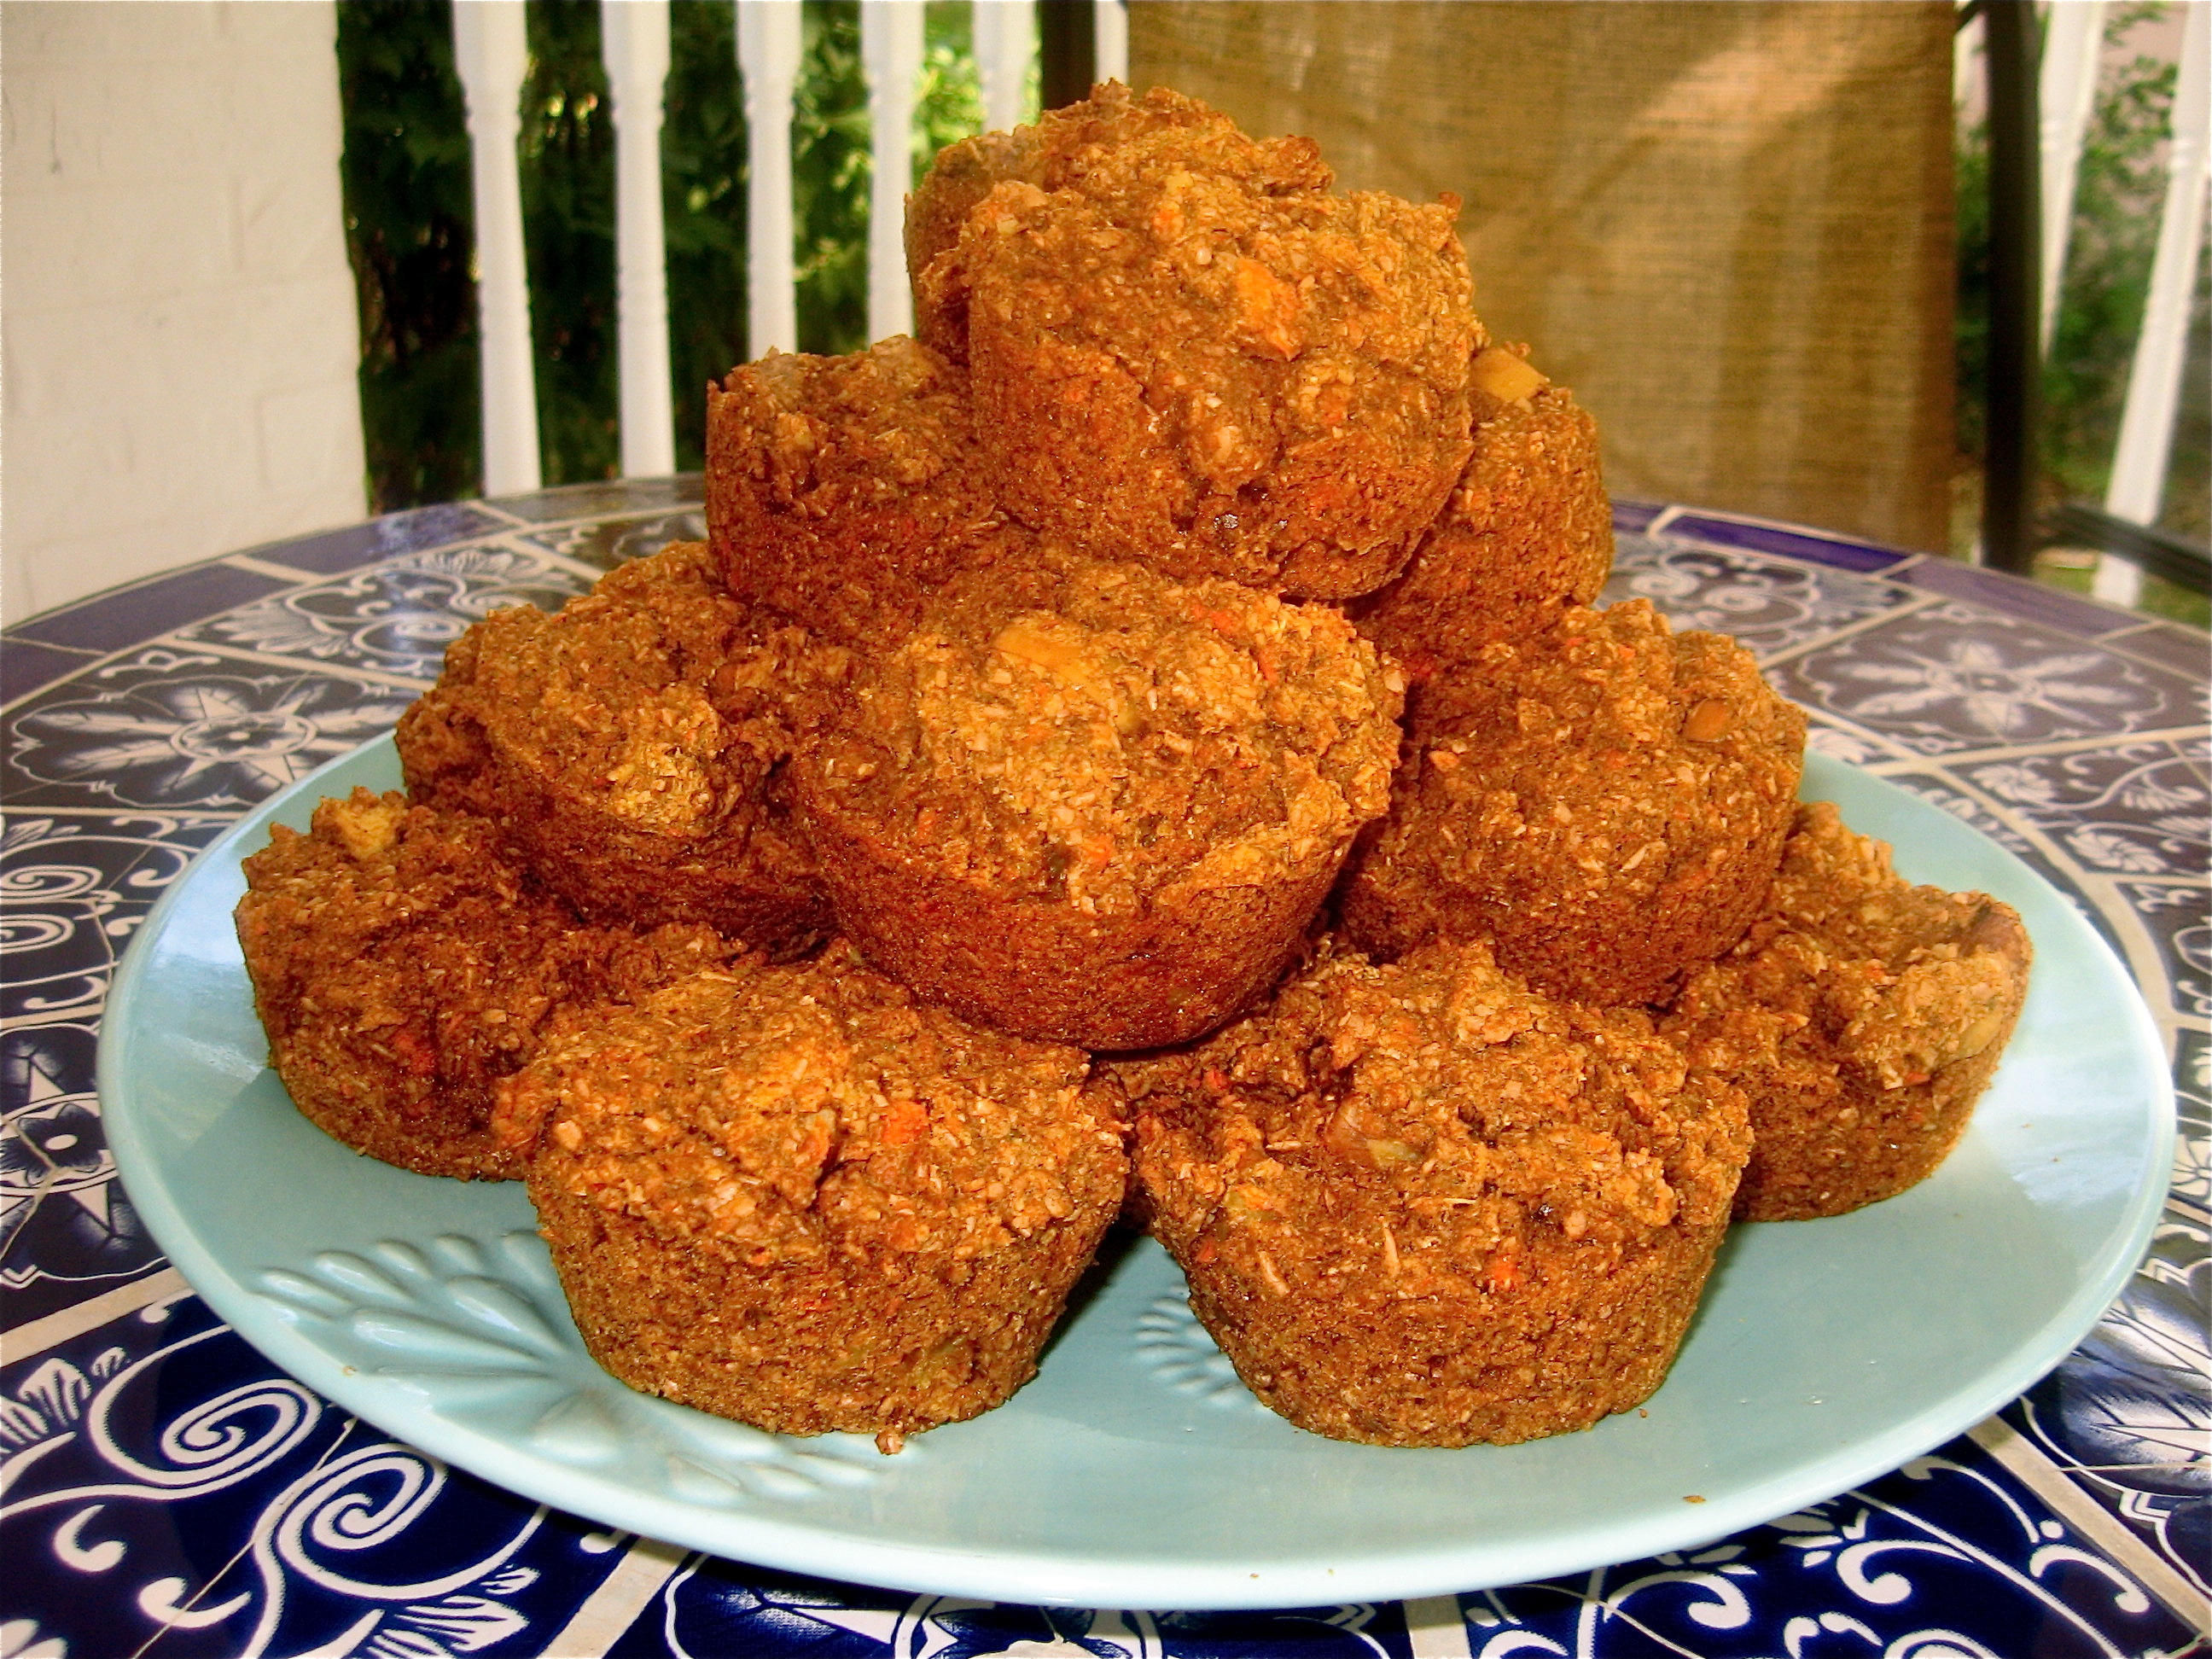 Carrot-Apple Bran Muffins